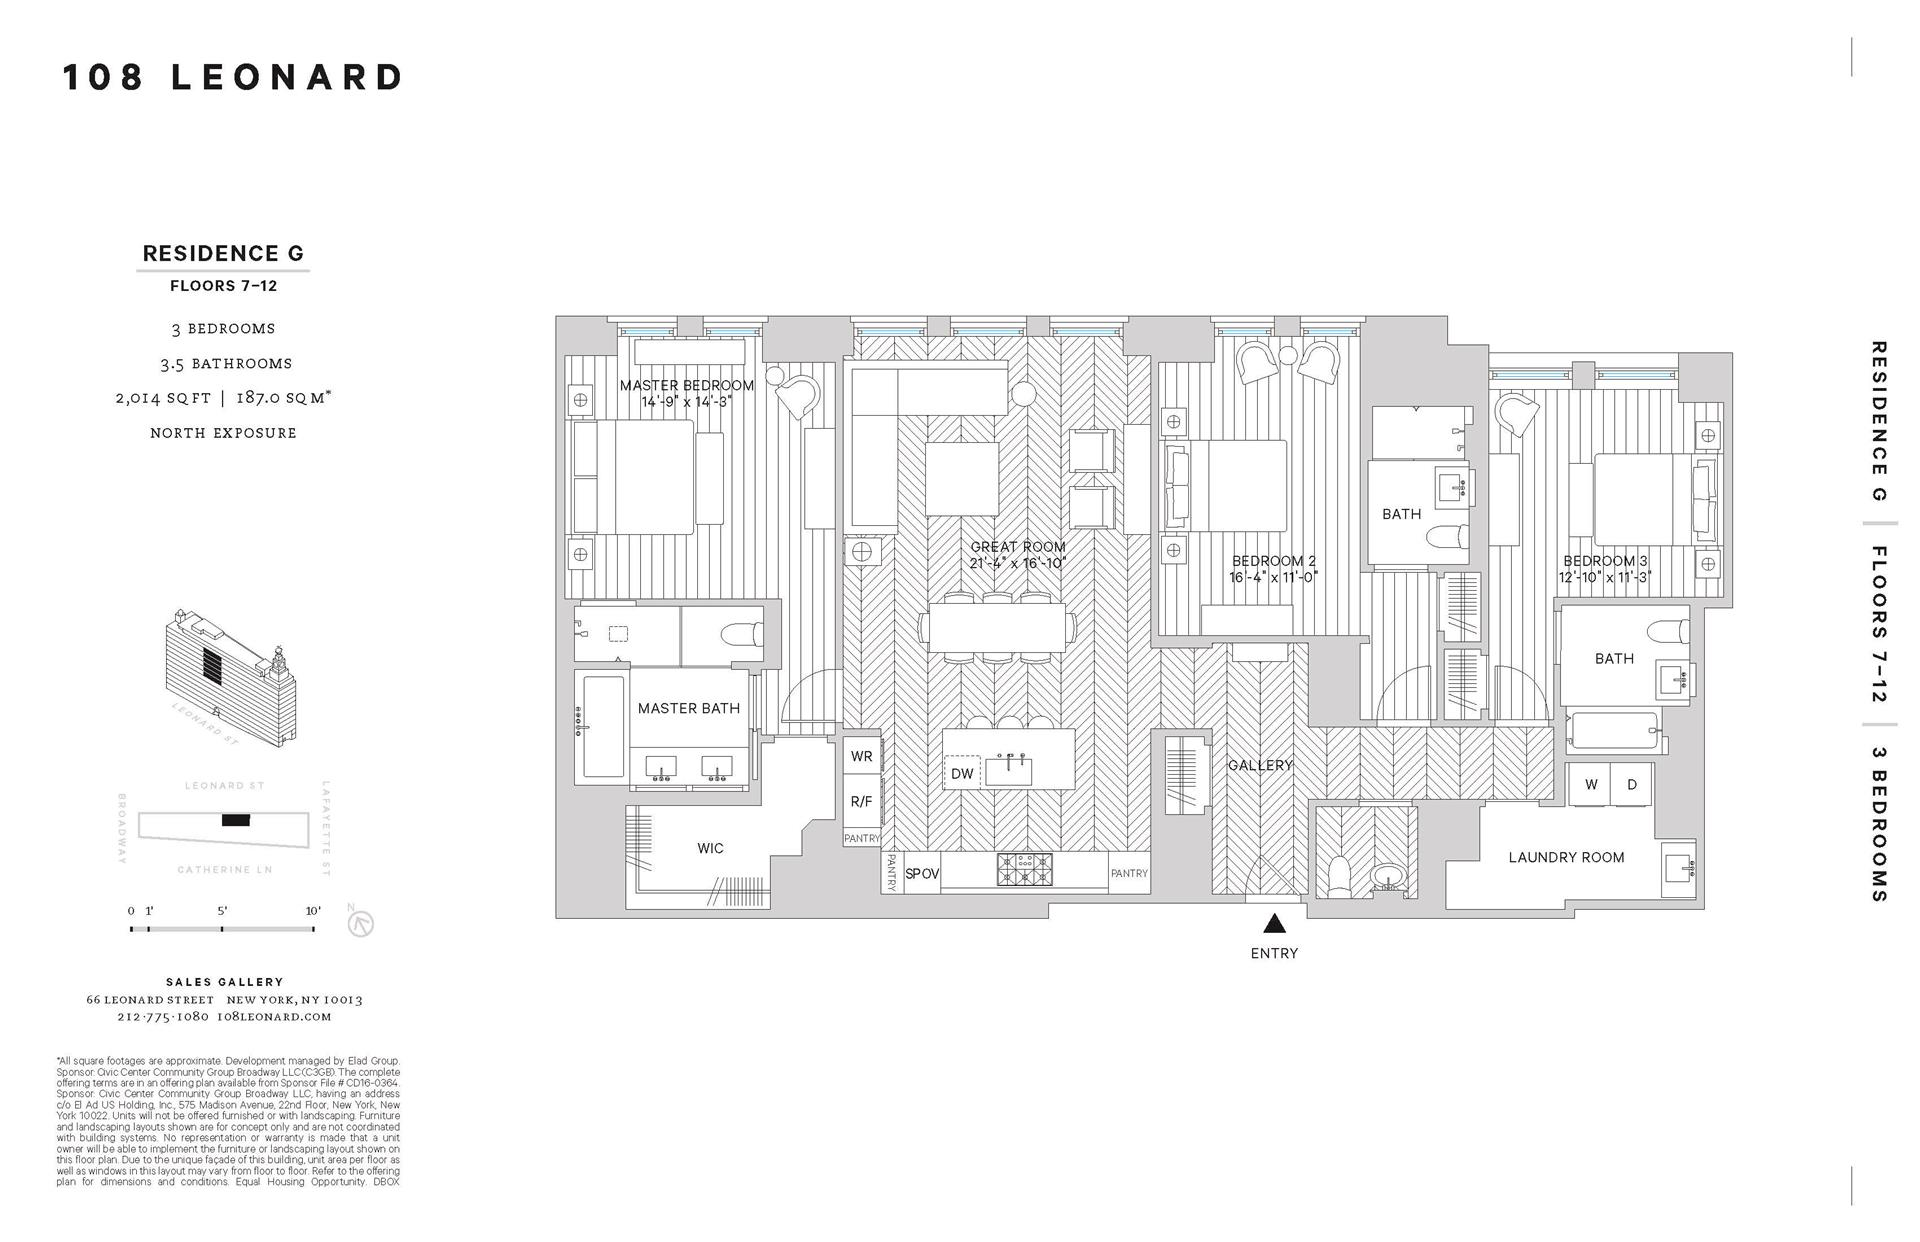 Floor plan of 108 Leonard St, 7G - TriBeCa, New York